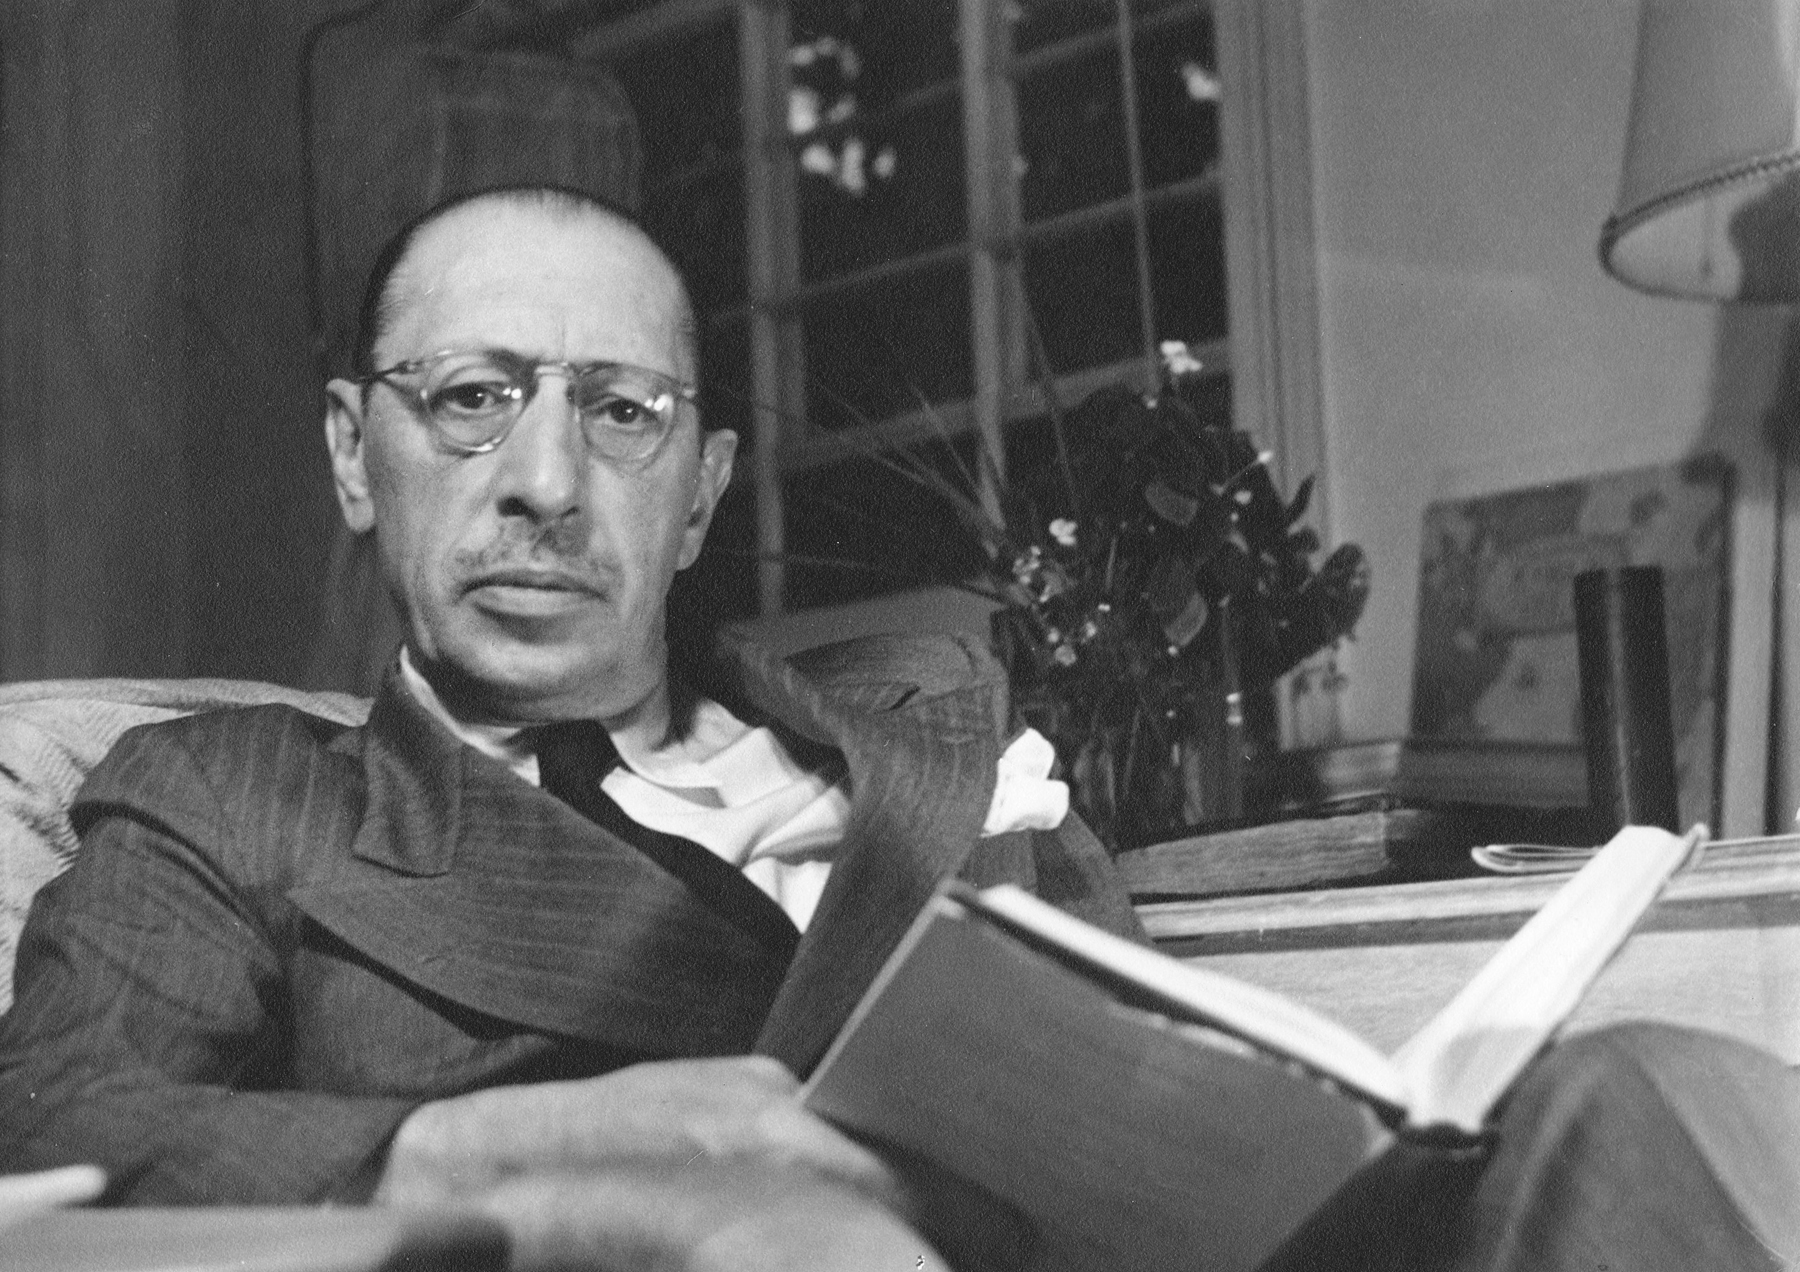 an introduction to the life of igor stravinsky a music composer A russian born composer, igor fedorovich stravinsky had a unique, definitive  style  igor stravinsky's life spanned from 1882 to 1971, a time that was  in  switzerland, homesickness led him to introduce russian folklore and.